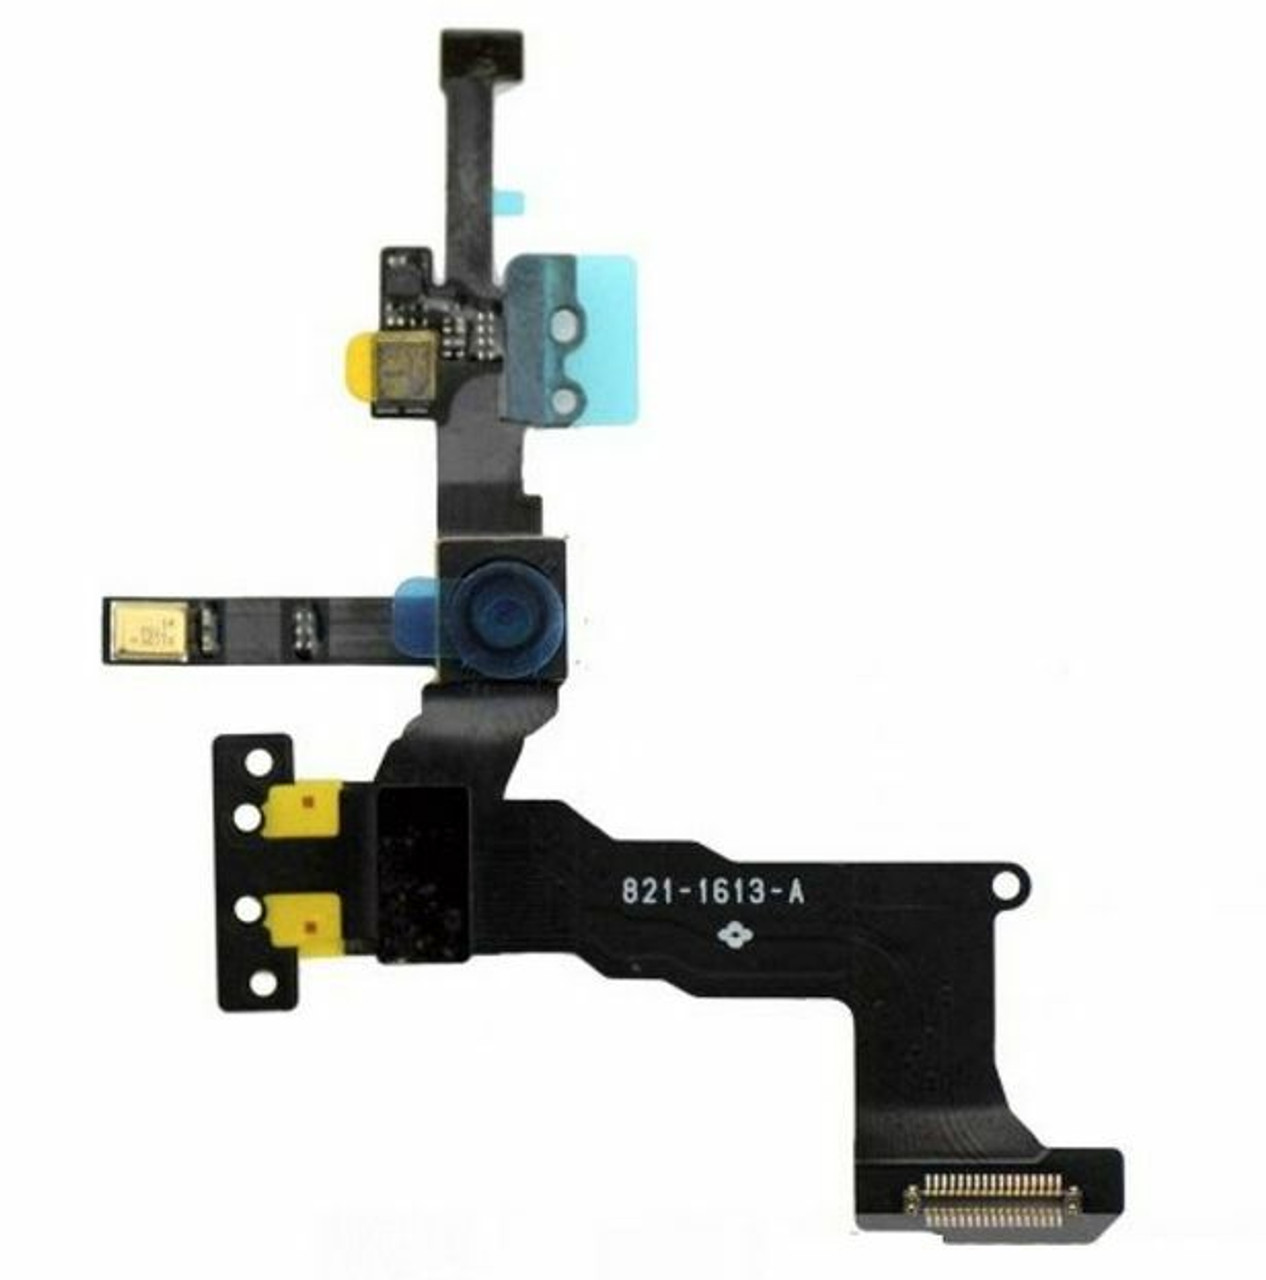 OEM SPEC Proximity Sensor Light Motion Cable Front Face Camera For iPhone 5S